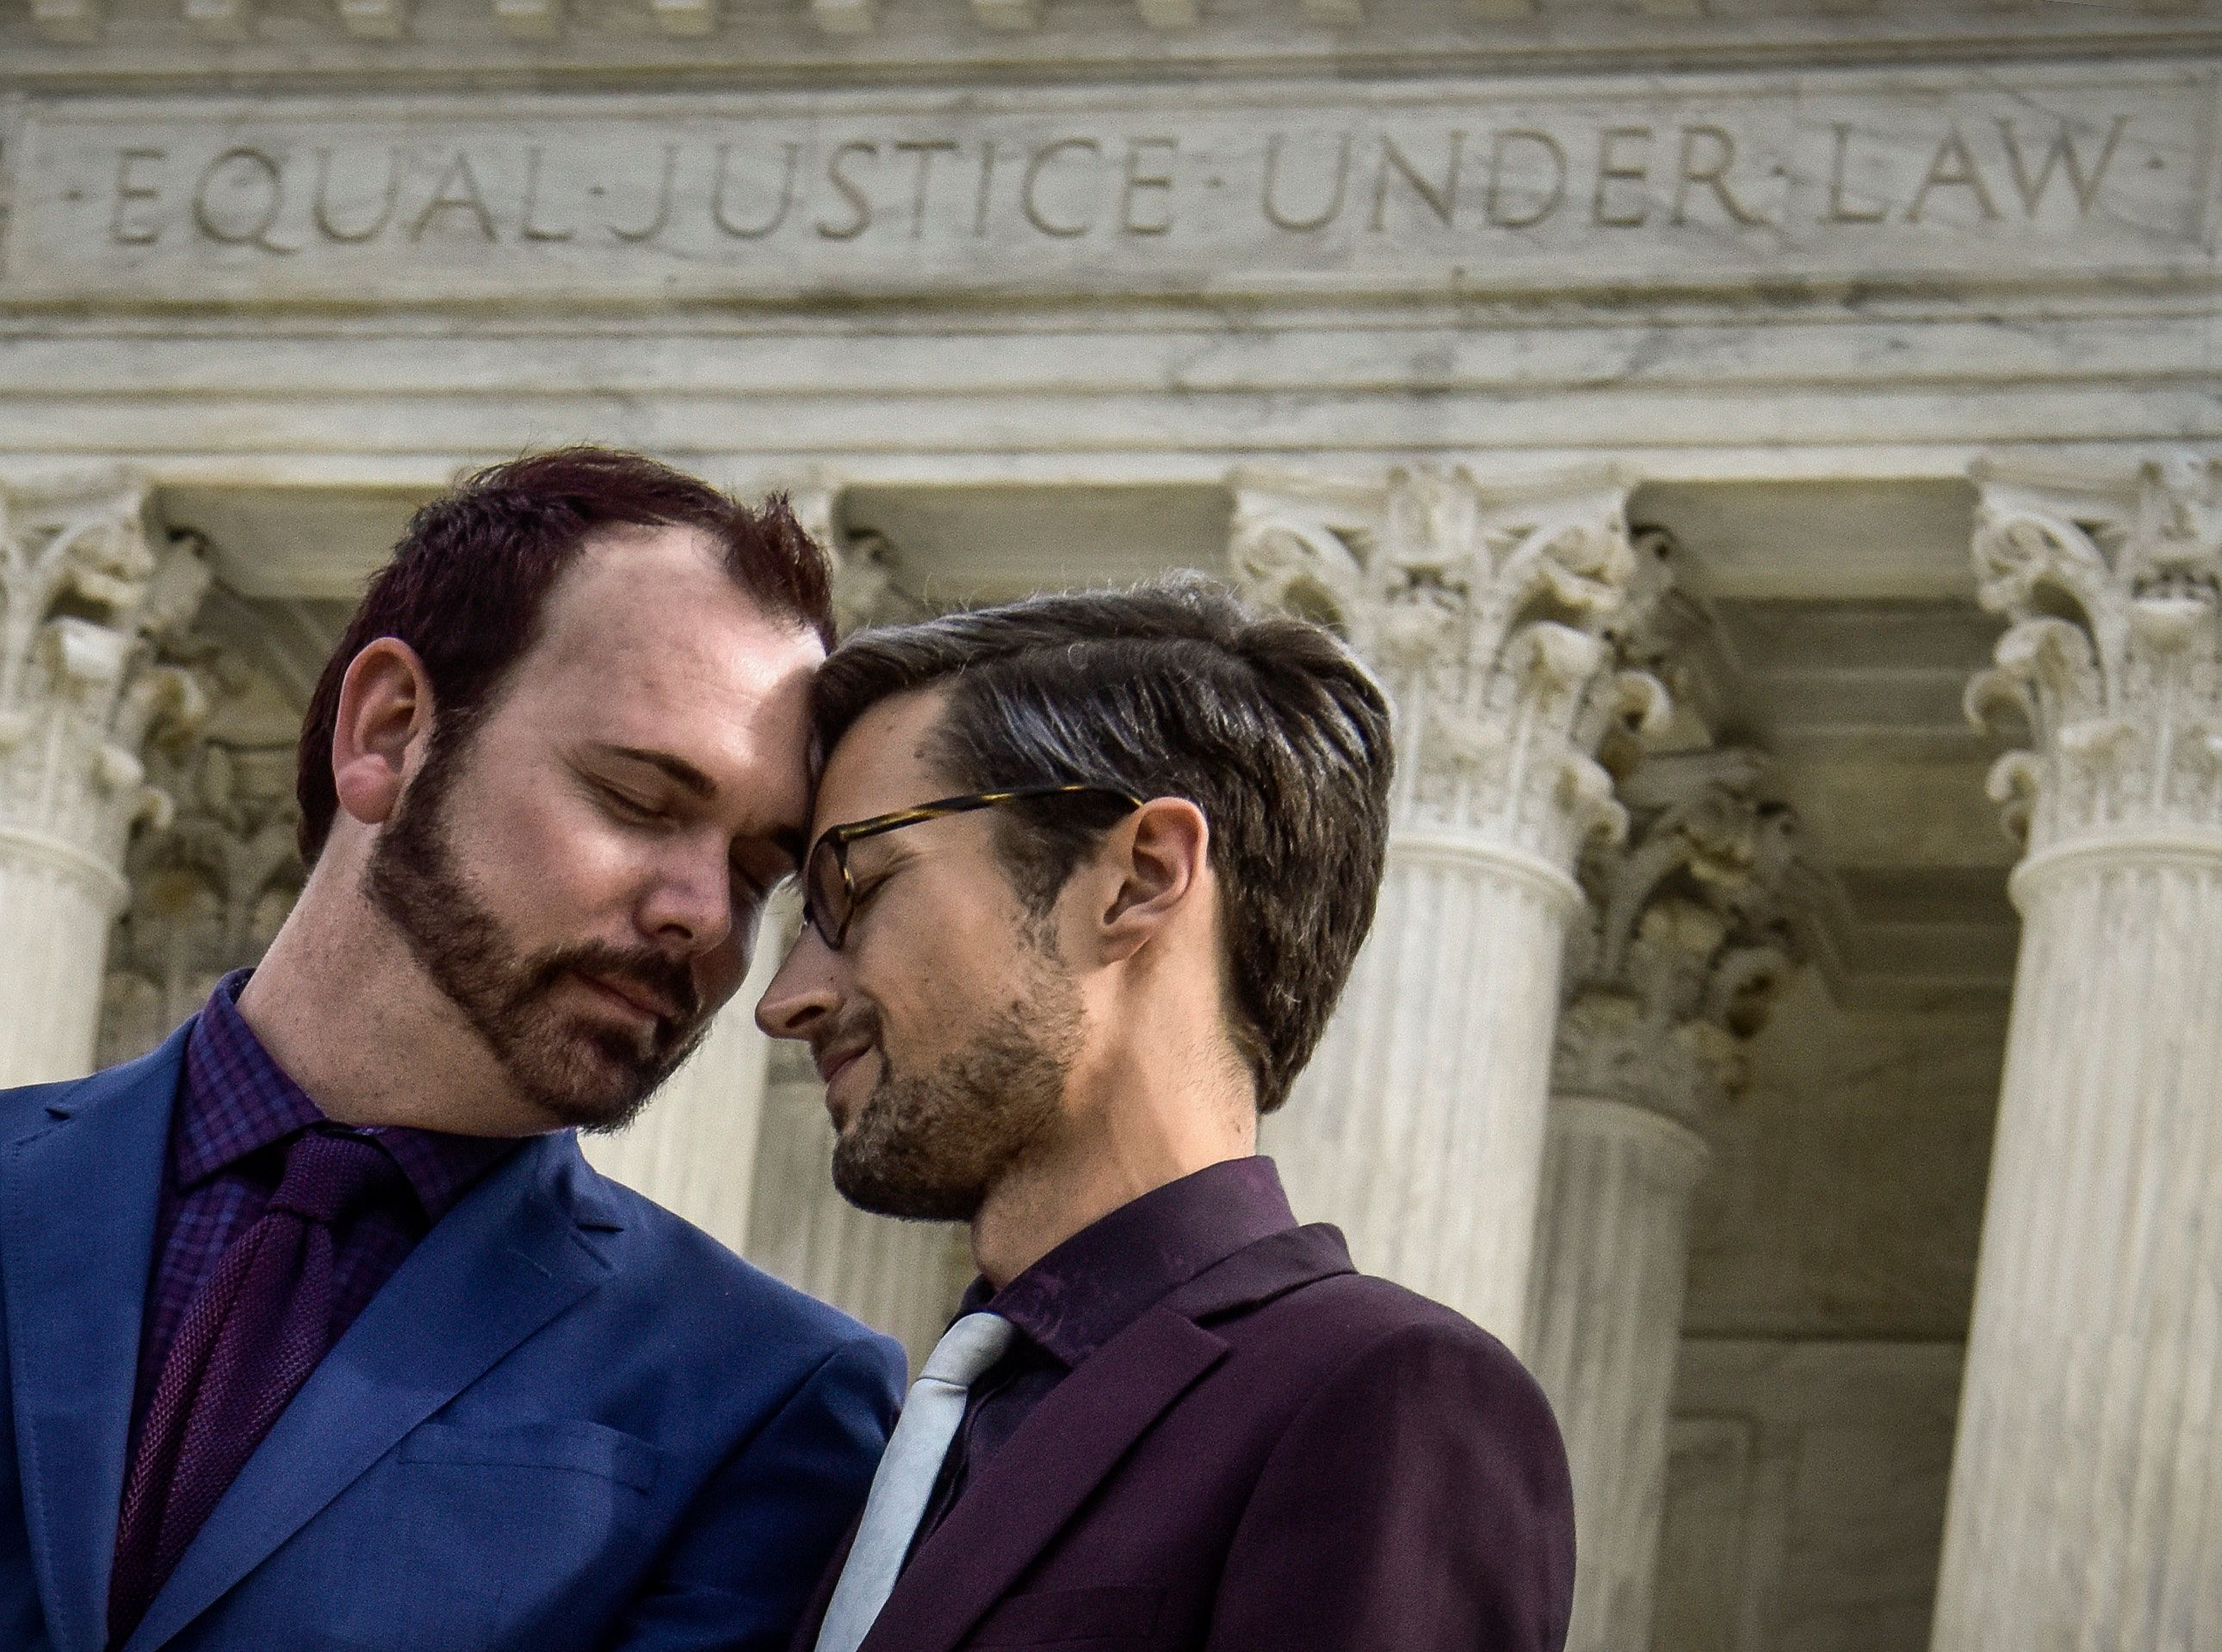 WASHINGTON, DC - DECEMBER 5: Plaintiffs Charlie Craig, left, and David Mullins out in front of the Supreme court, which heard arguments in the Masterpiece Bakery discrimination case on December, 05, 2017 in Washington, DC. (Photo by Bill O'Leary/The Washington Post via Getty Images)